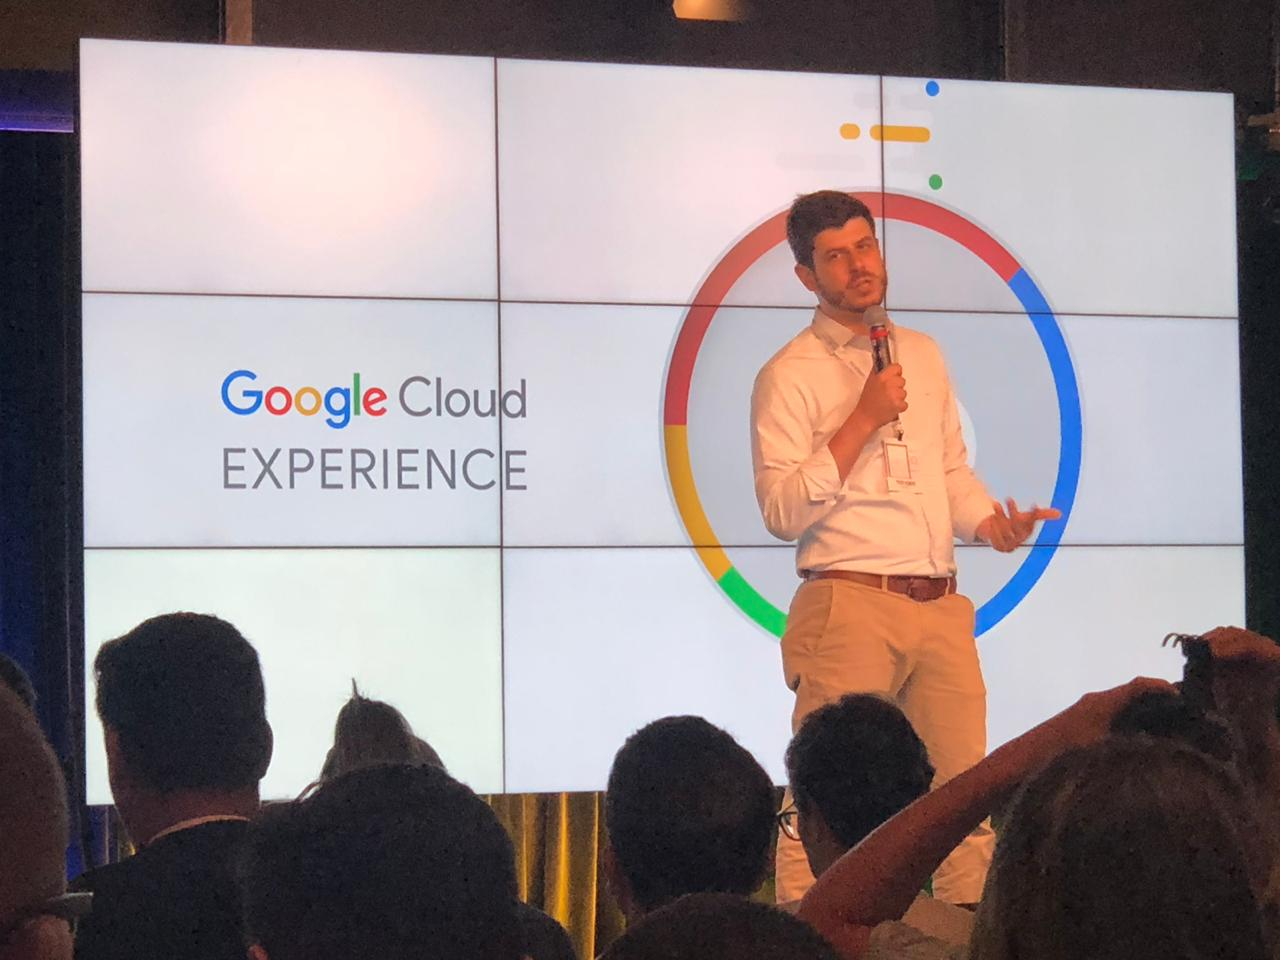 evento-google-cloud-experience